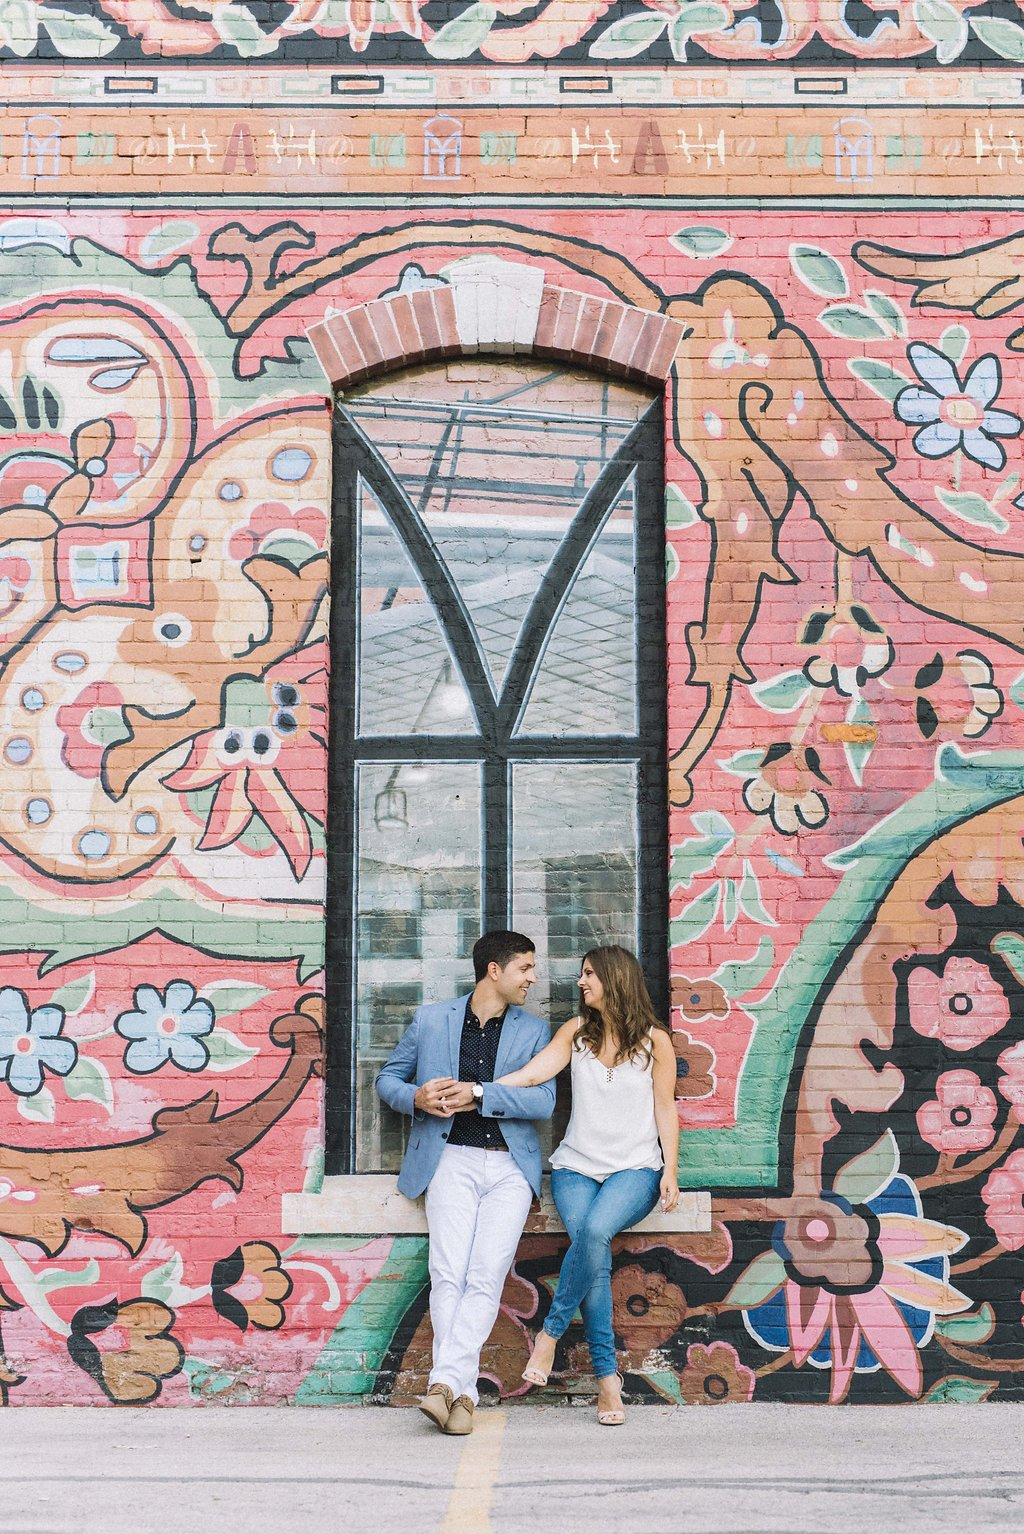 Toronto engagement photo Locations - Liberty Village - Olive Photography